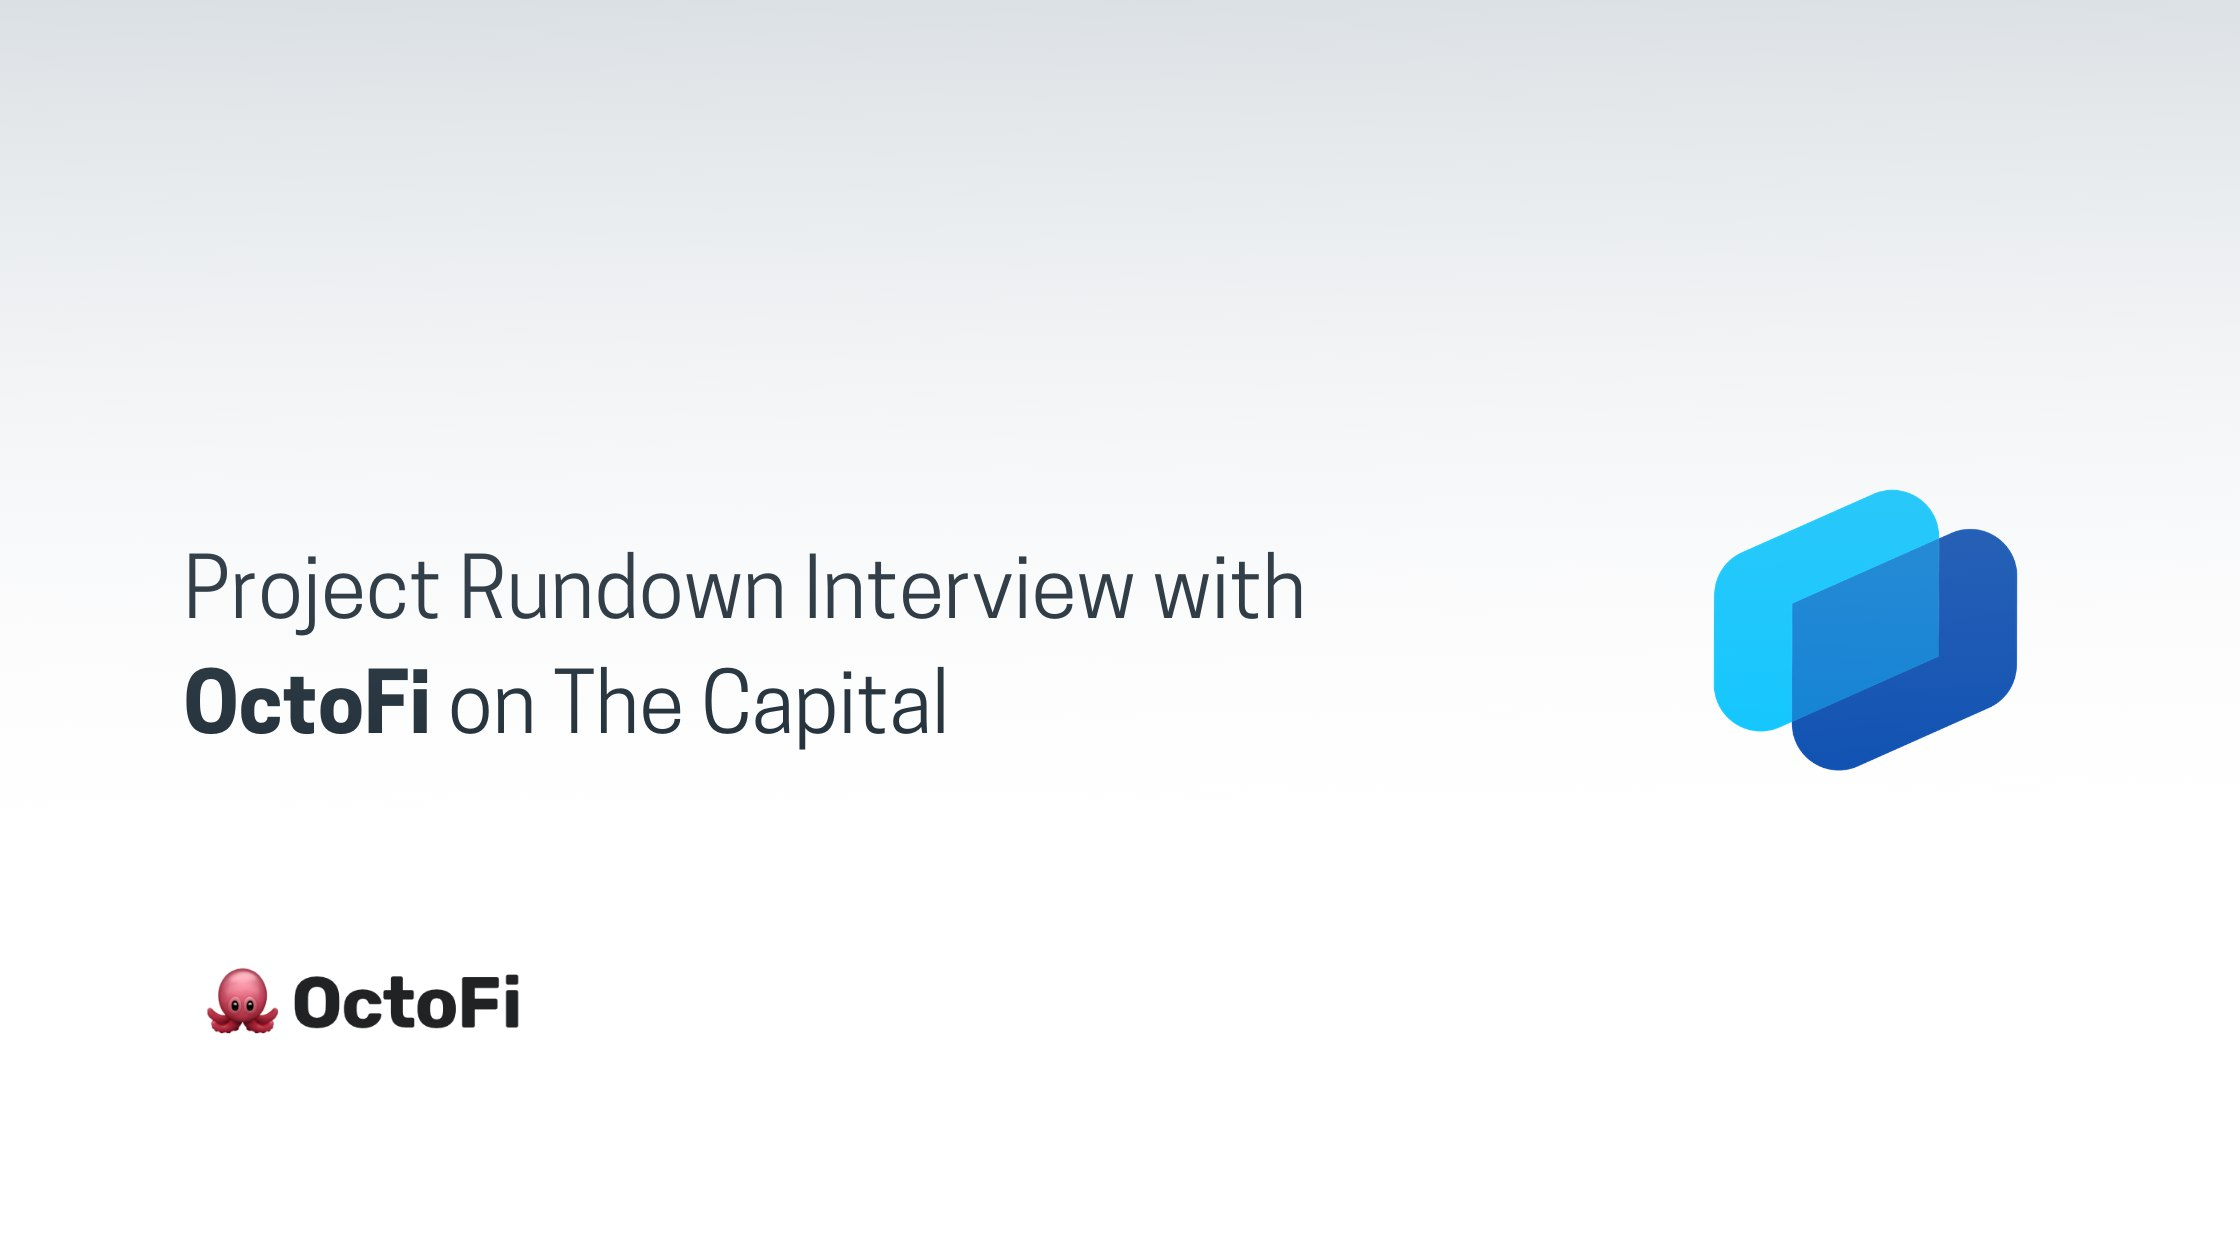 Project Rundown Interview with OctoFi on The Capital